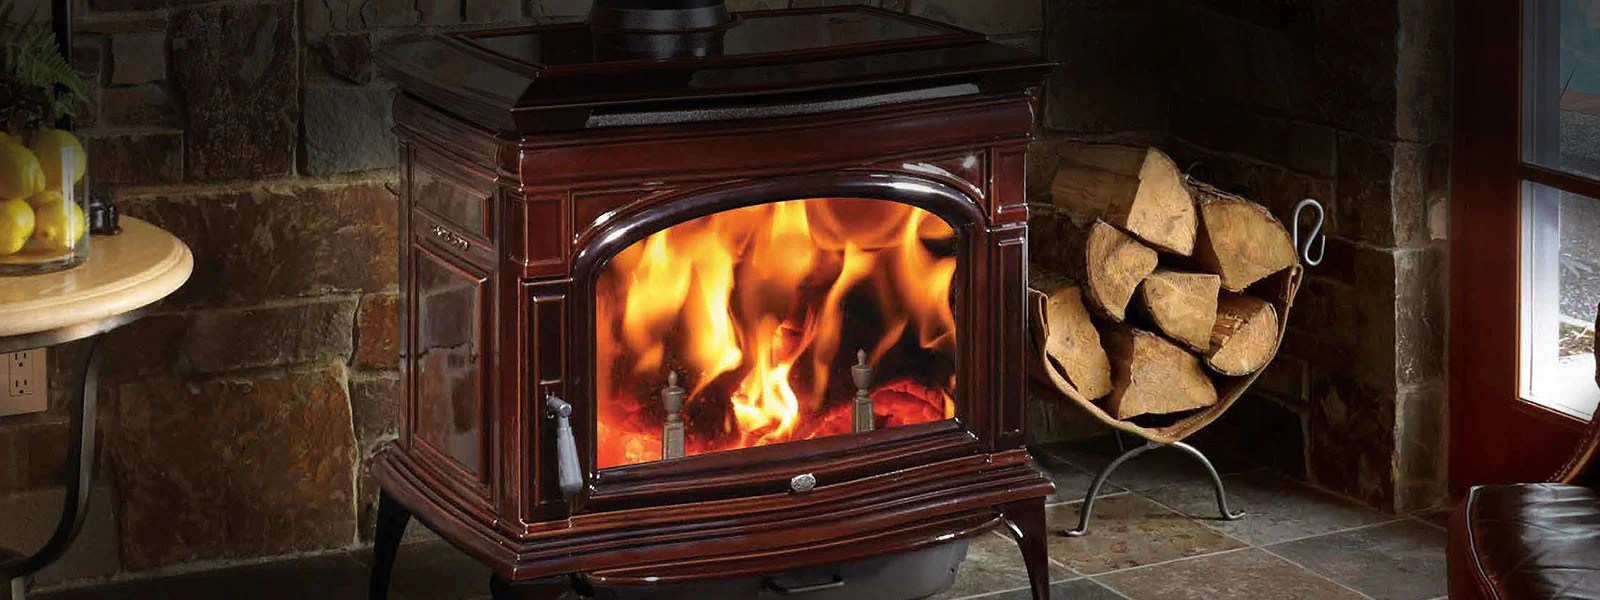 Gas Fireplace Store A Fireplace Store Online Fireplaces Wood Stoves Chimney Products